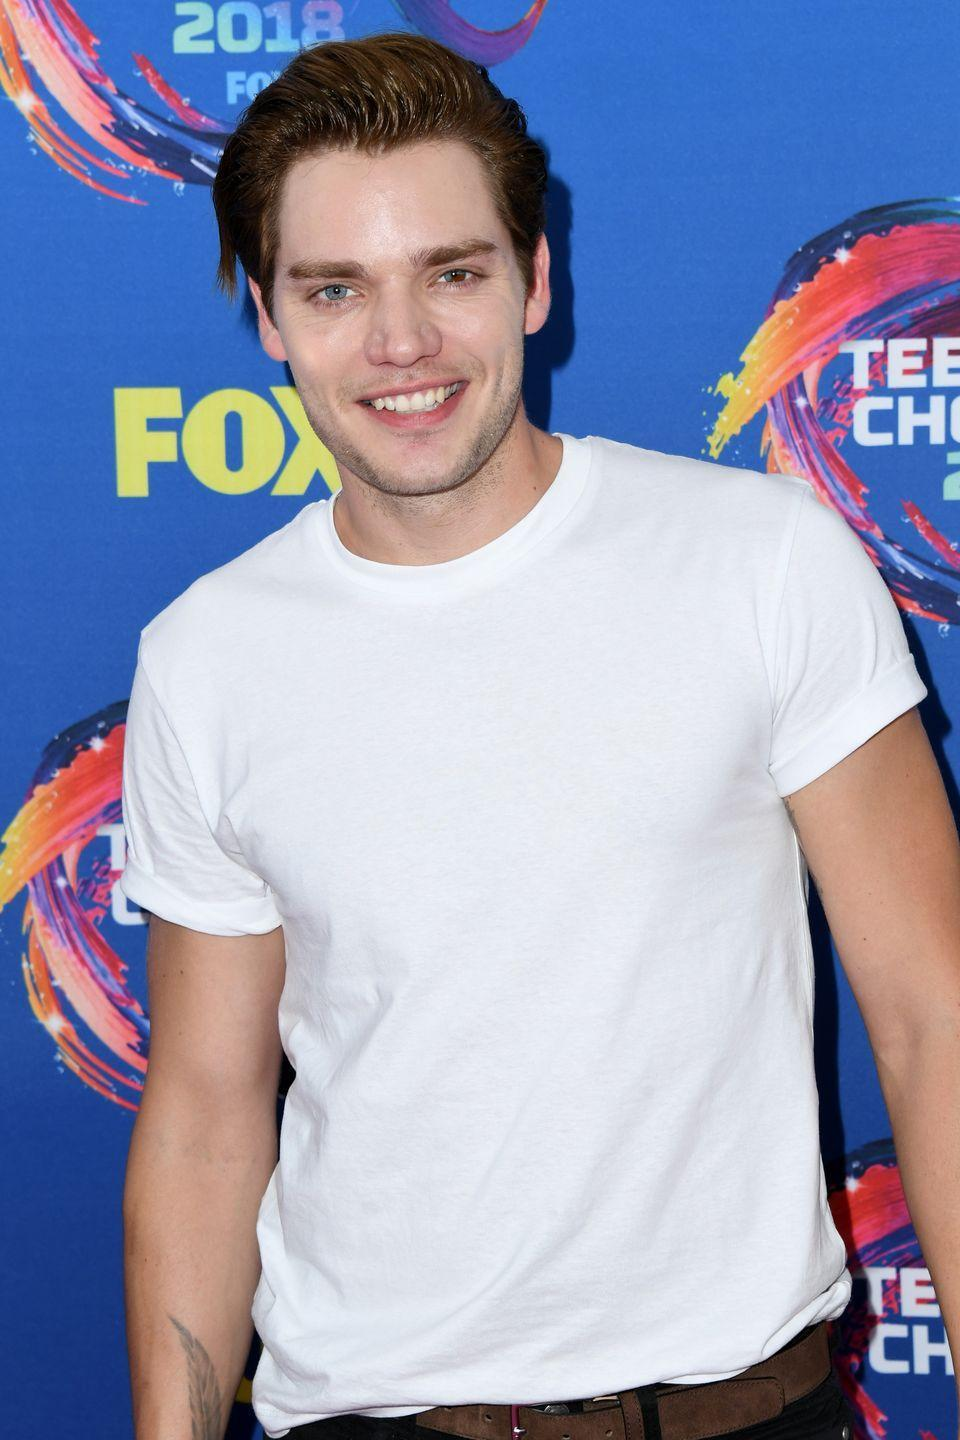 """<p>The star of Freeform's <em>Shadowhunters </em>didn't always love his half blue-half brown left eye. In April, he tweeted a message to one child who was bullied for his eye condition: """"Your eyes are beyond beautiful,"""" he <a href=""""https://twitter.com/domsherwood1/status/981533534027468800?lang=en"""" rel=""""nofollow noopener"""" target=""""_blank"""" data-ylk=""""slk:wrote"""" class=""""link rapid-noclick-resp"""">wrote</a>. """"It took me a long time to realise that about mine."""" </p>"""